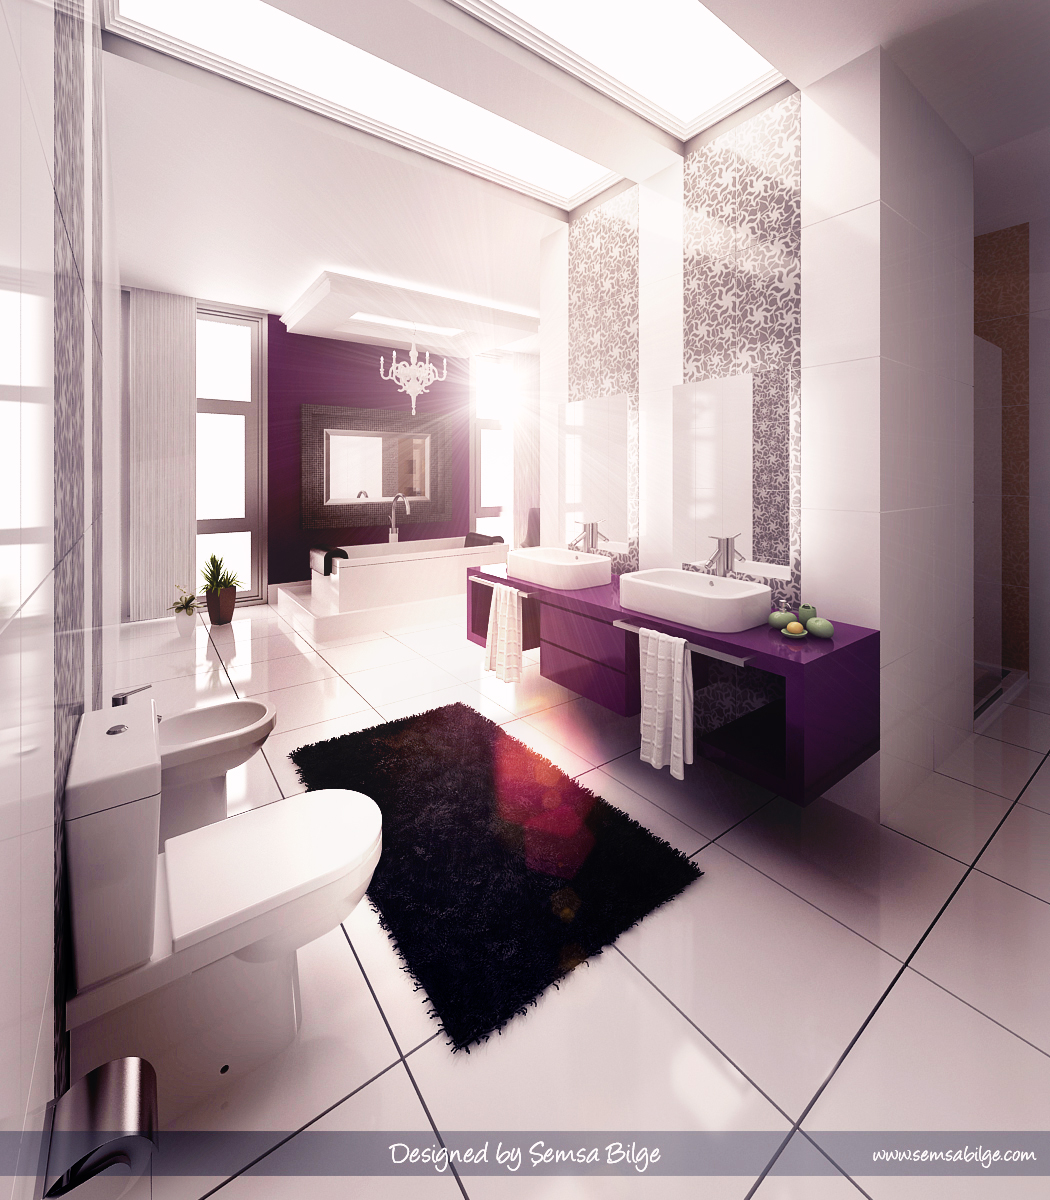 Inspiring bathroom designs for the soul for Bathroom design and decor